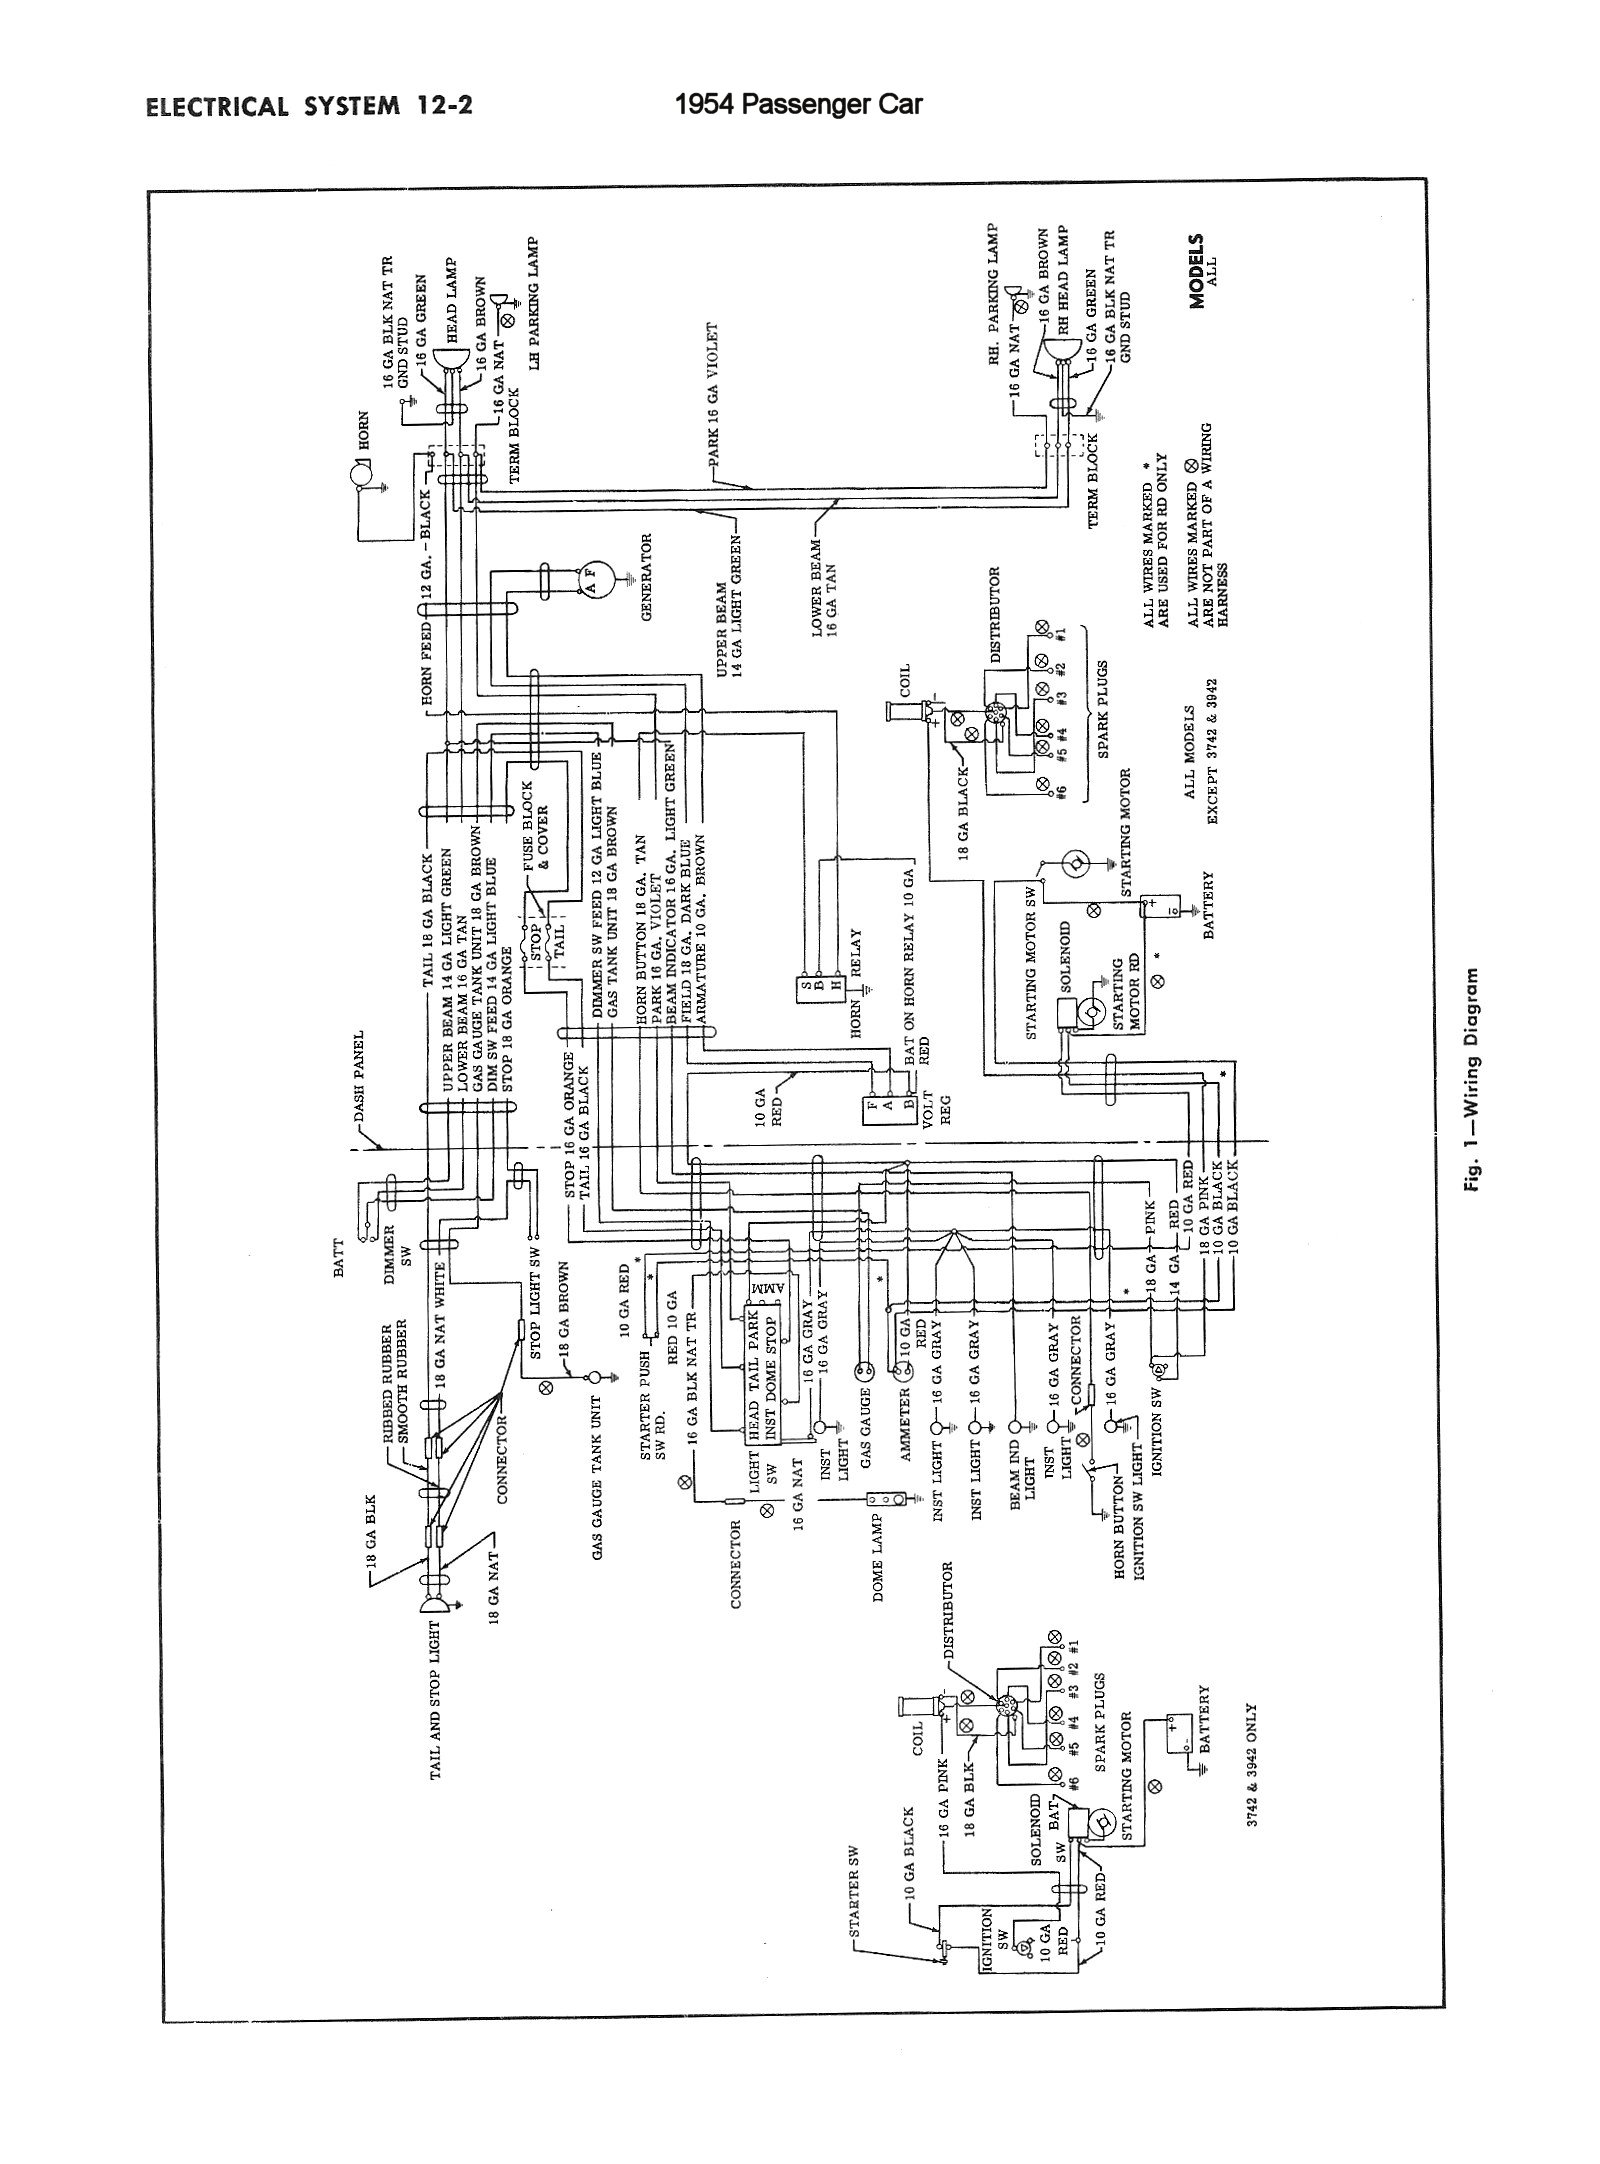 1952 gmc wiring diagram wiring diagrams 1965 chevy truck fuse box wiring